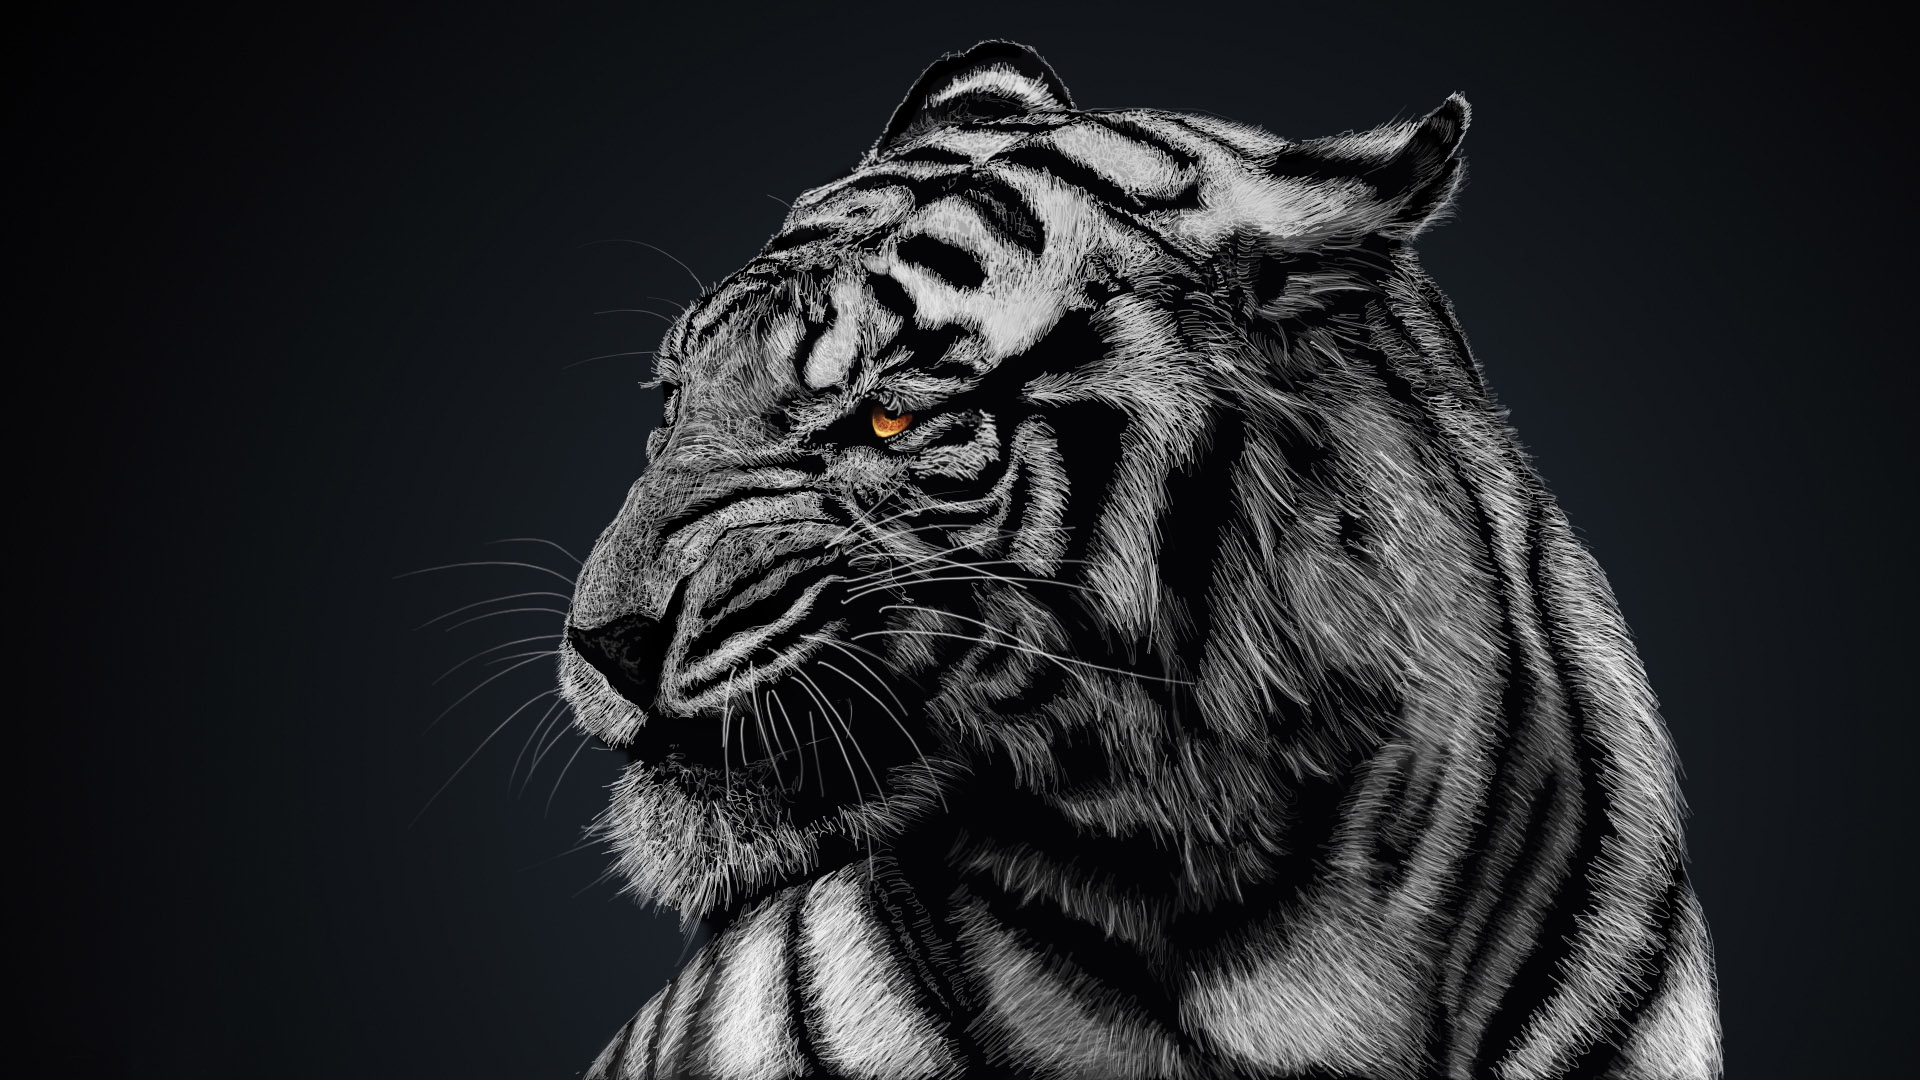 Download Tiger Animal Wallpaper Full Hd Wallpapers 1920x1080